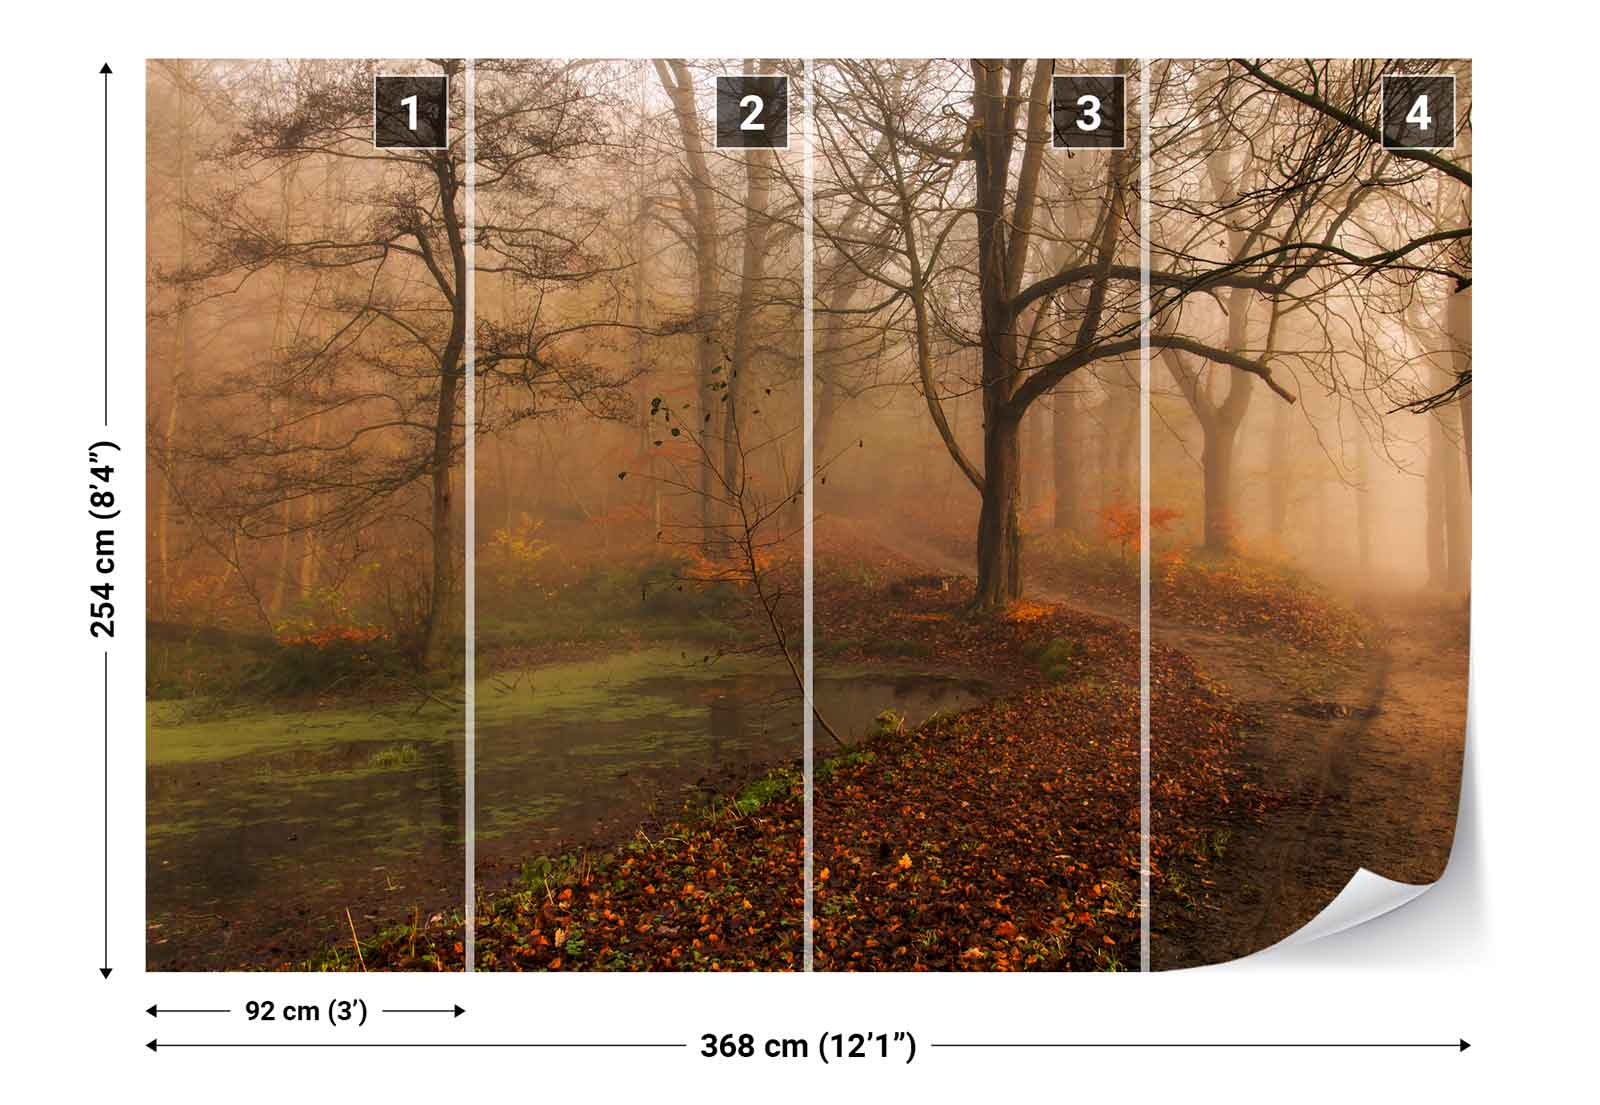 blo e b ume wald stra e teich nebel vlies fototapete 1x 789377 tapete ebay. Black Bedroom Furniture Sets. Home Design Ideas